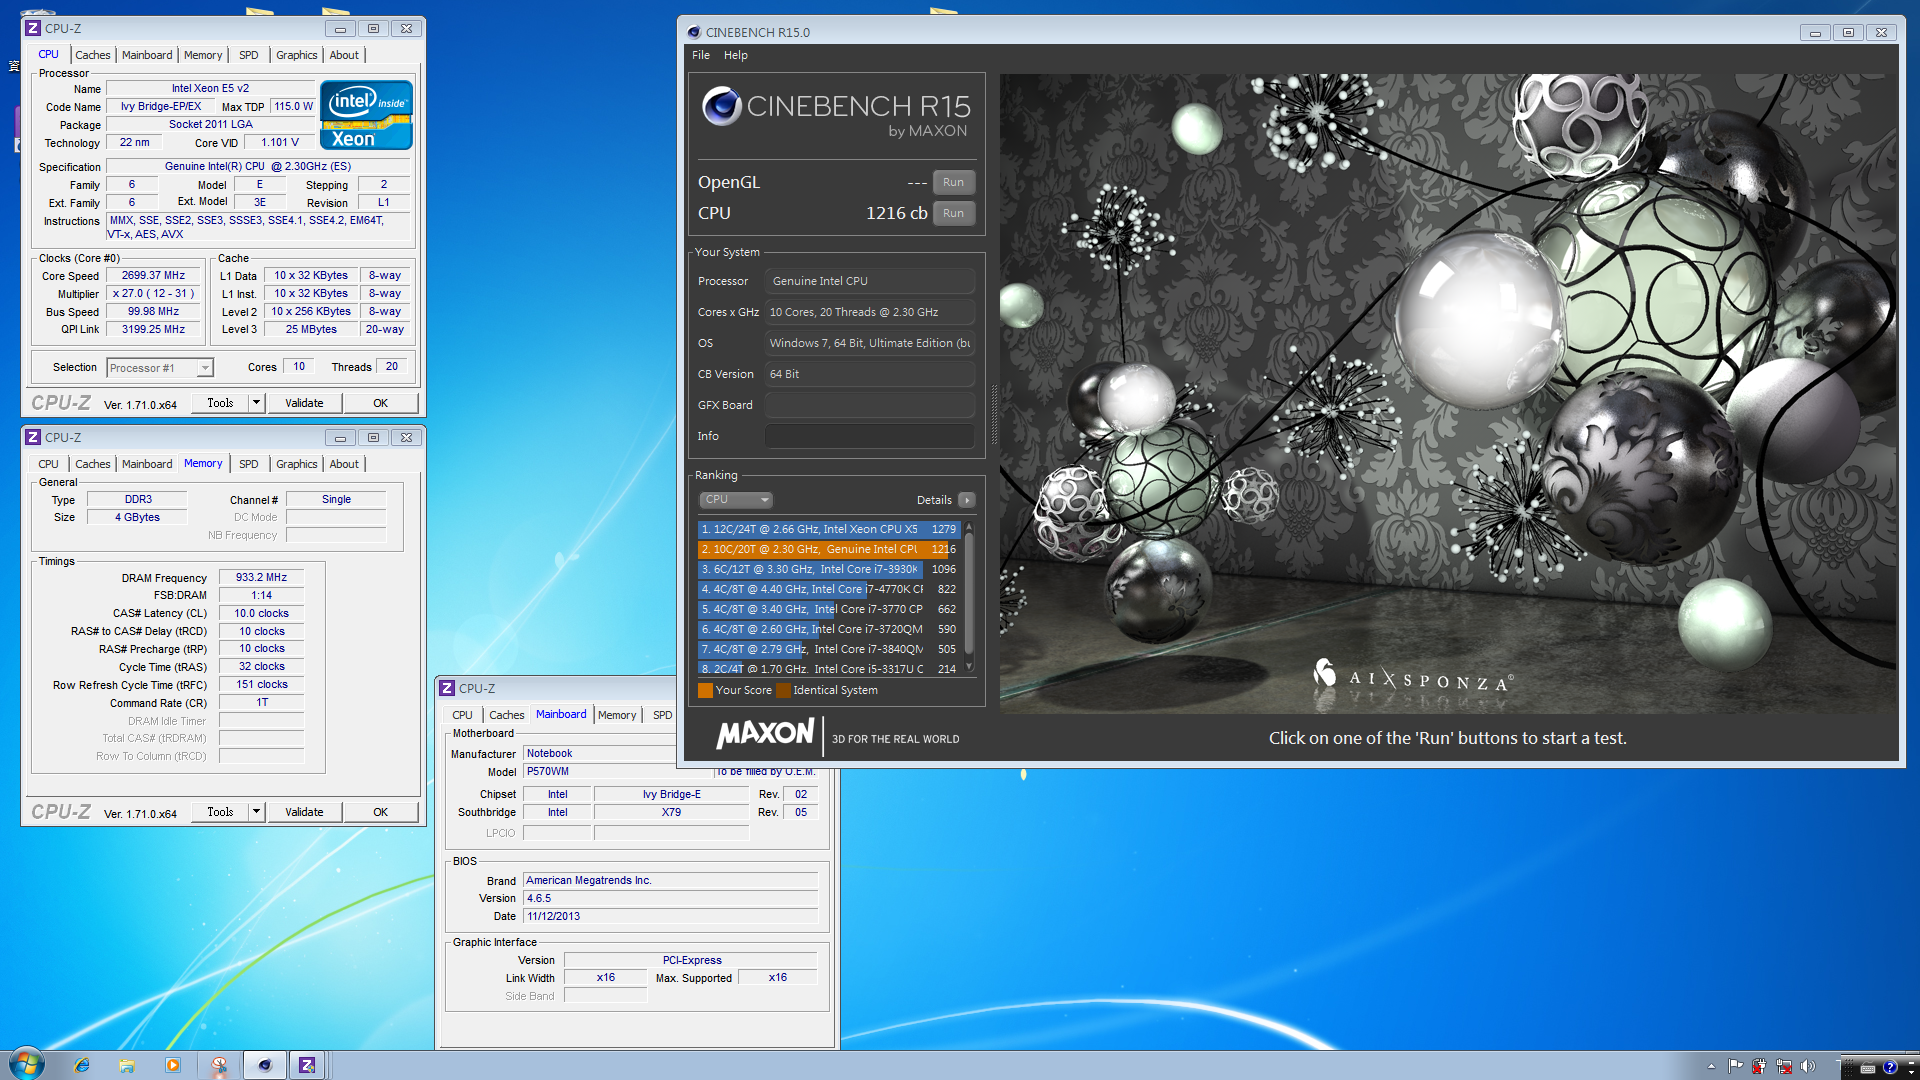 Terry702 s cinebench r15 score 1216 cb with a xeon e5 for 2670 5